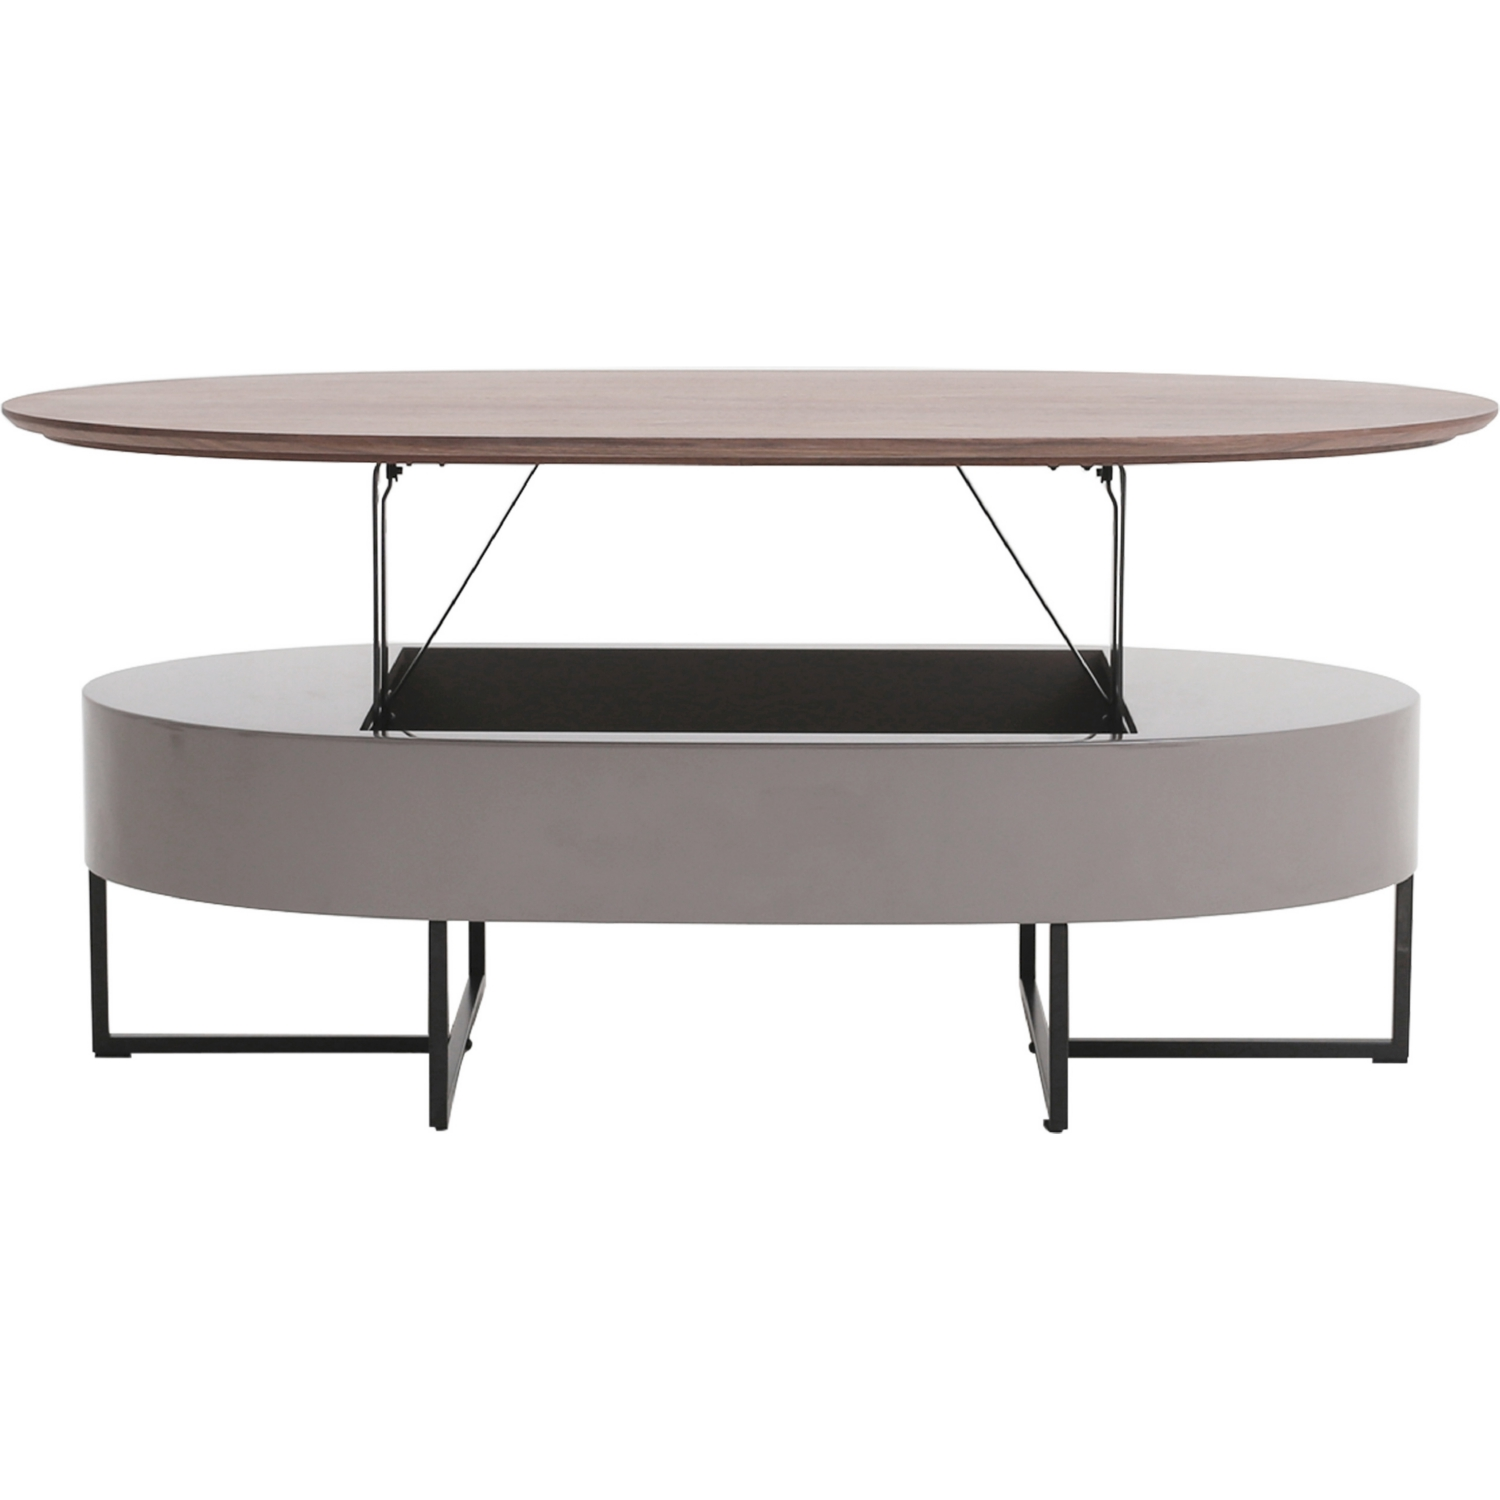 Attractive Oval Lift Top Coffee Table Part - 13: Hansel Oval Lift-Top Coffee Table In Walnut U0026 Gray On Black Iron Legs